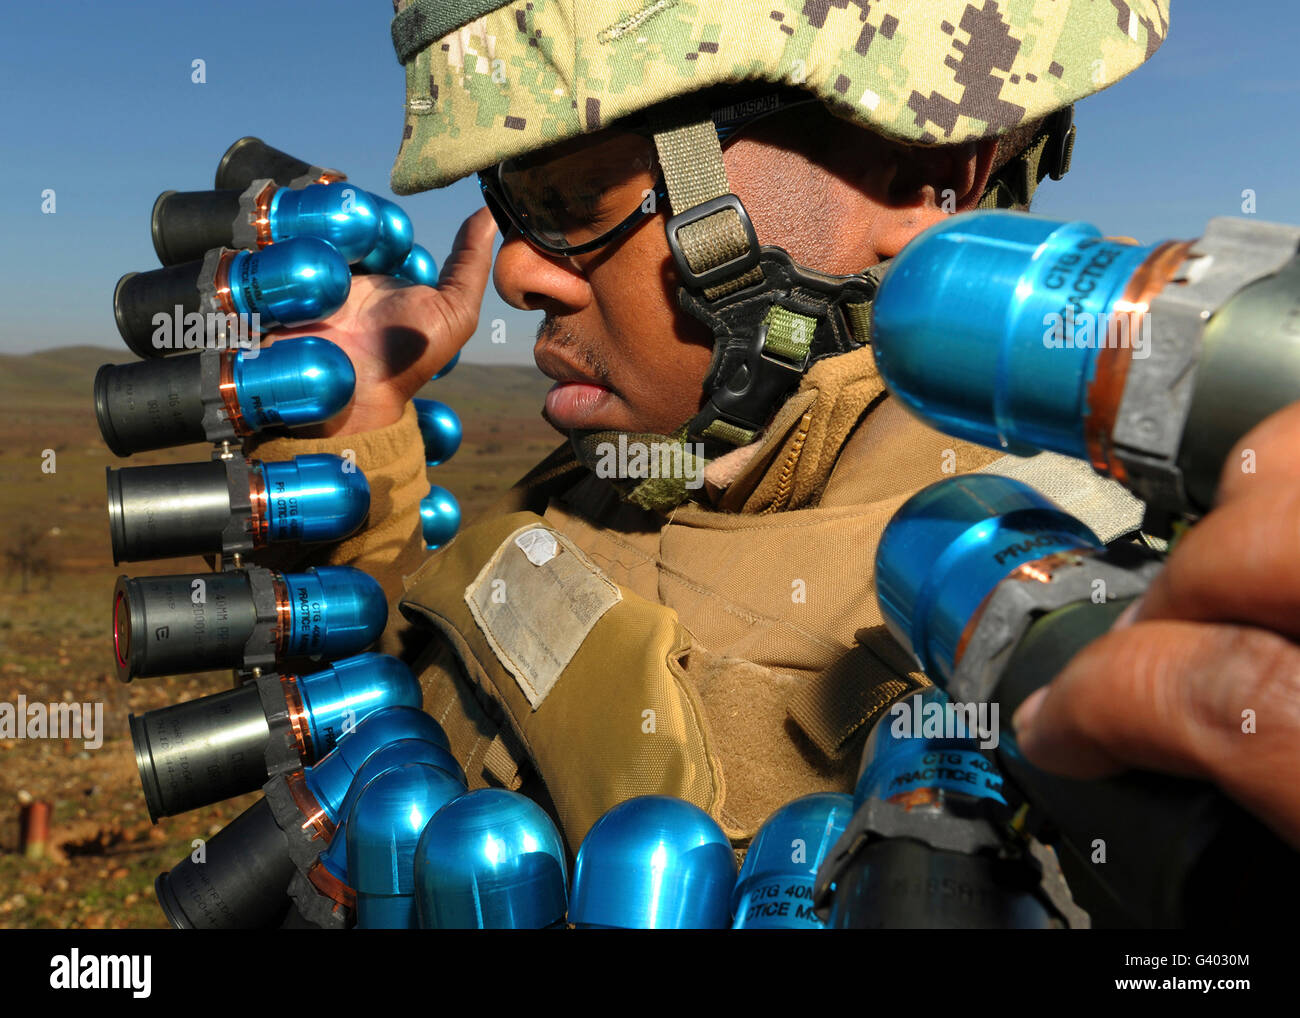 Soldier readies 40mm grenades to fire from the Mk19 grenade launcher. - Stock Image